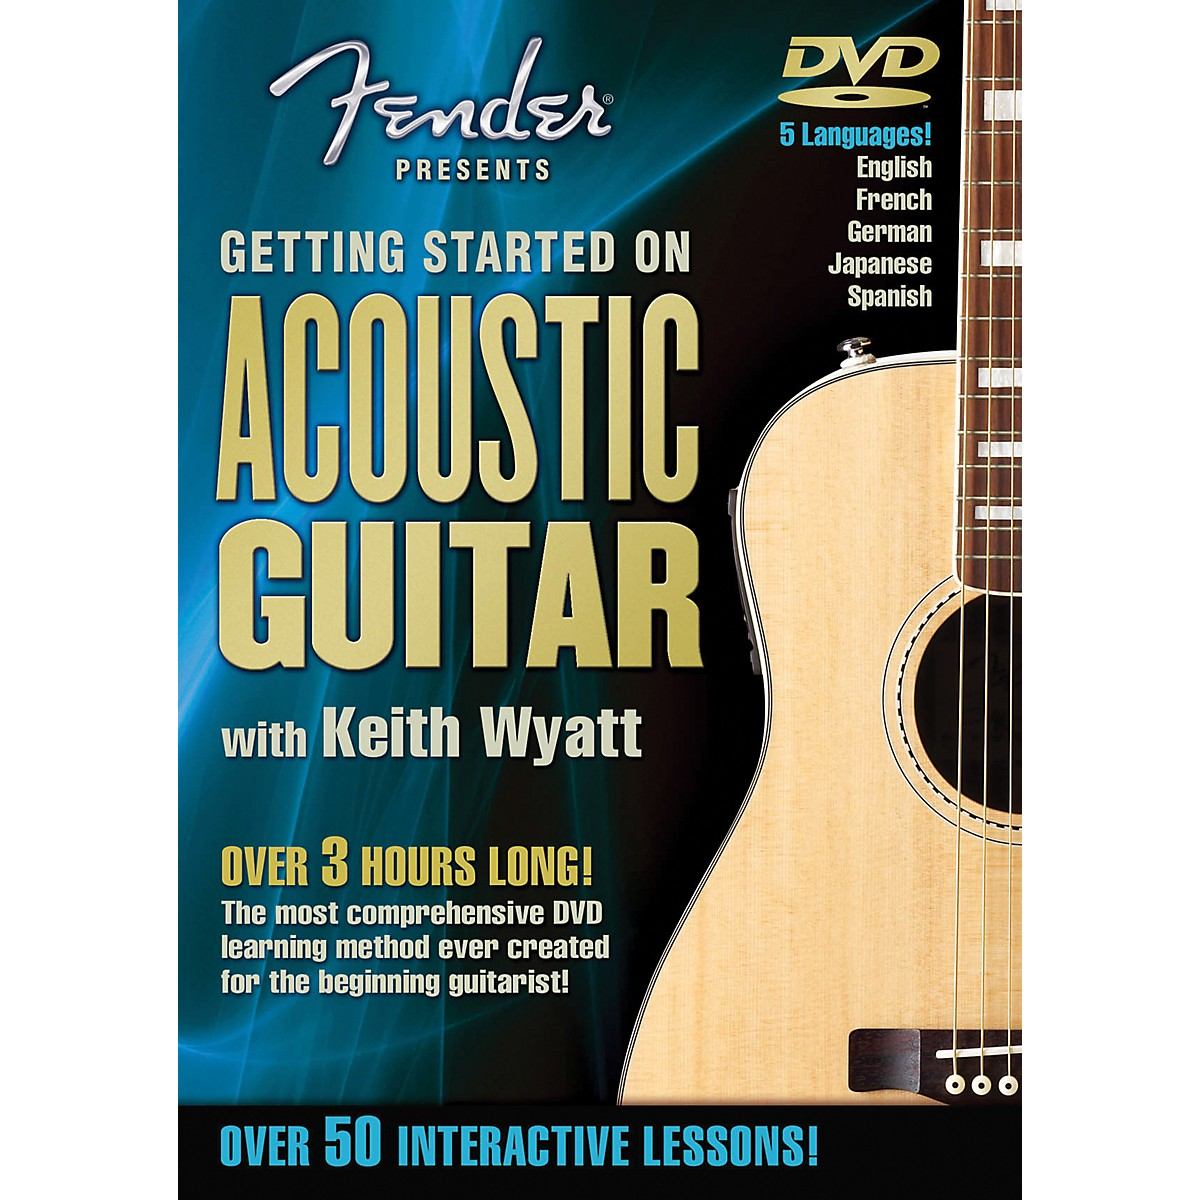 Hal Leonard Fender DVD Package - Getting Started On Acoustic Guitar